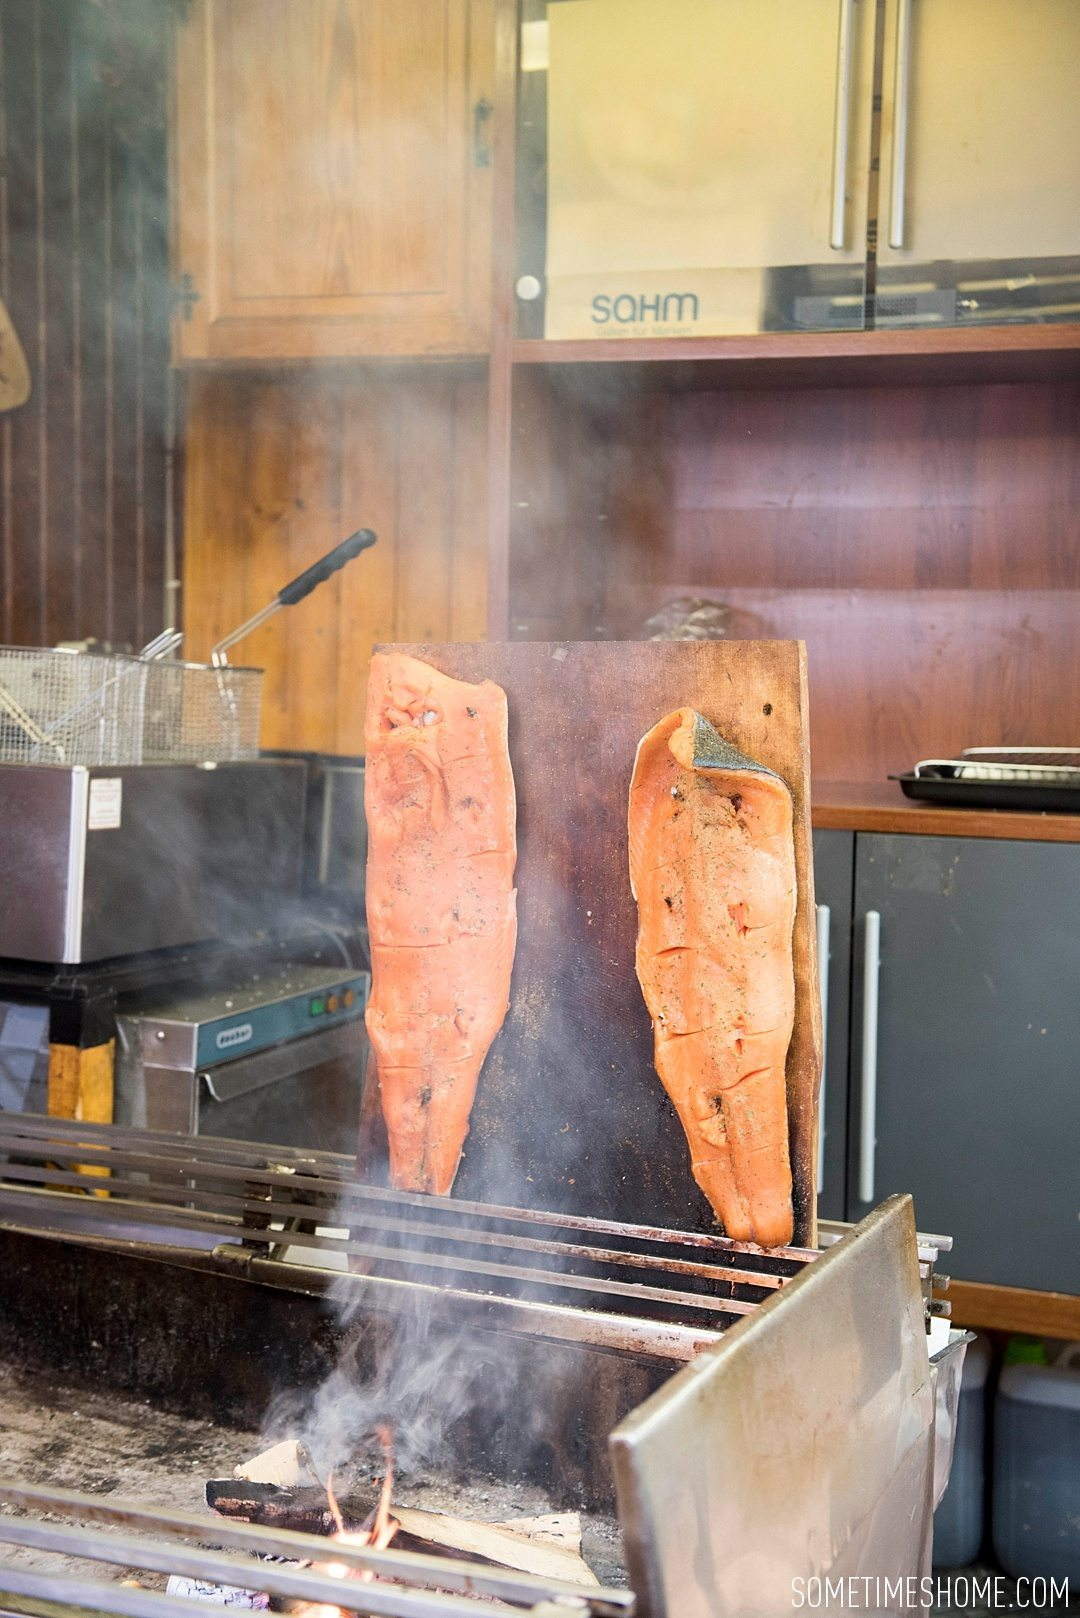 Travel tips with local cuisine - smoked salmon in a Christmas Market in Budapest. Image by Mikkel Paige, for travel blog Sometimes Home.